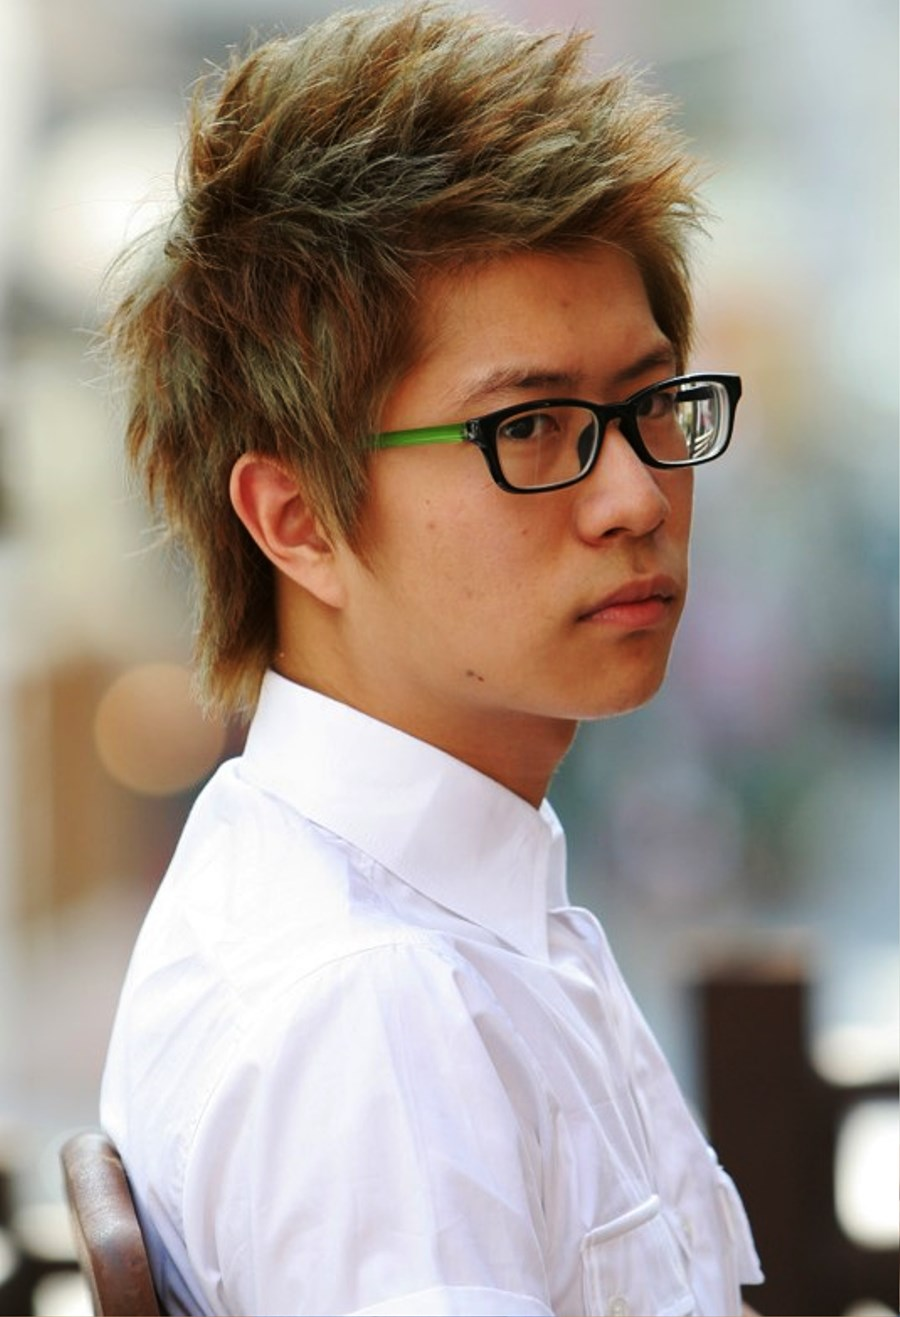 New Trendy Korean Hairstyles For Men Hairstyles Ideas New Trendy